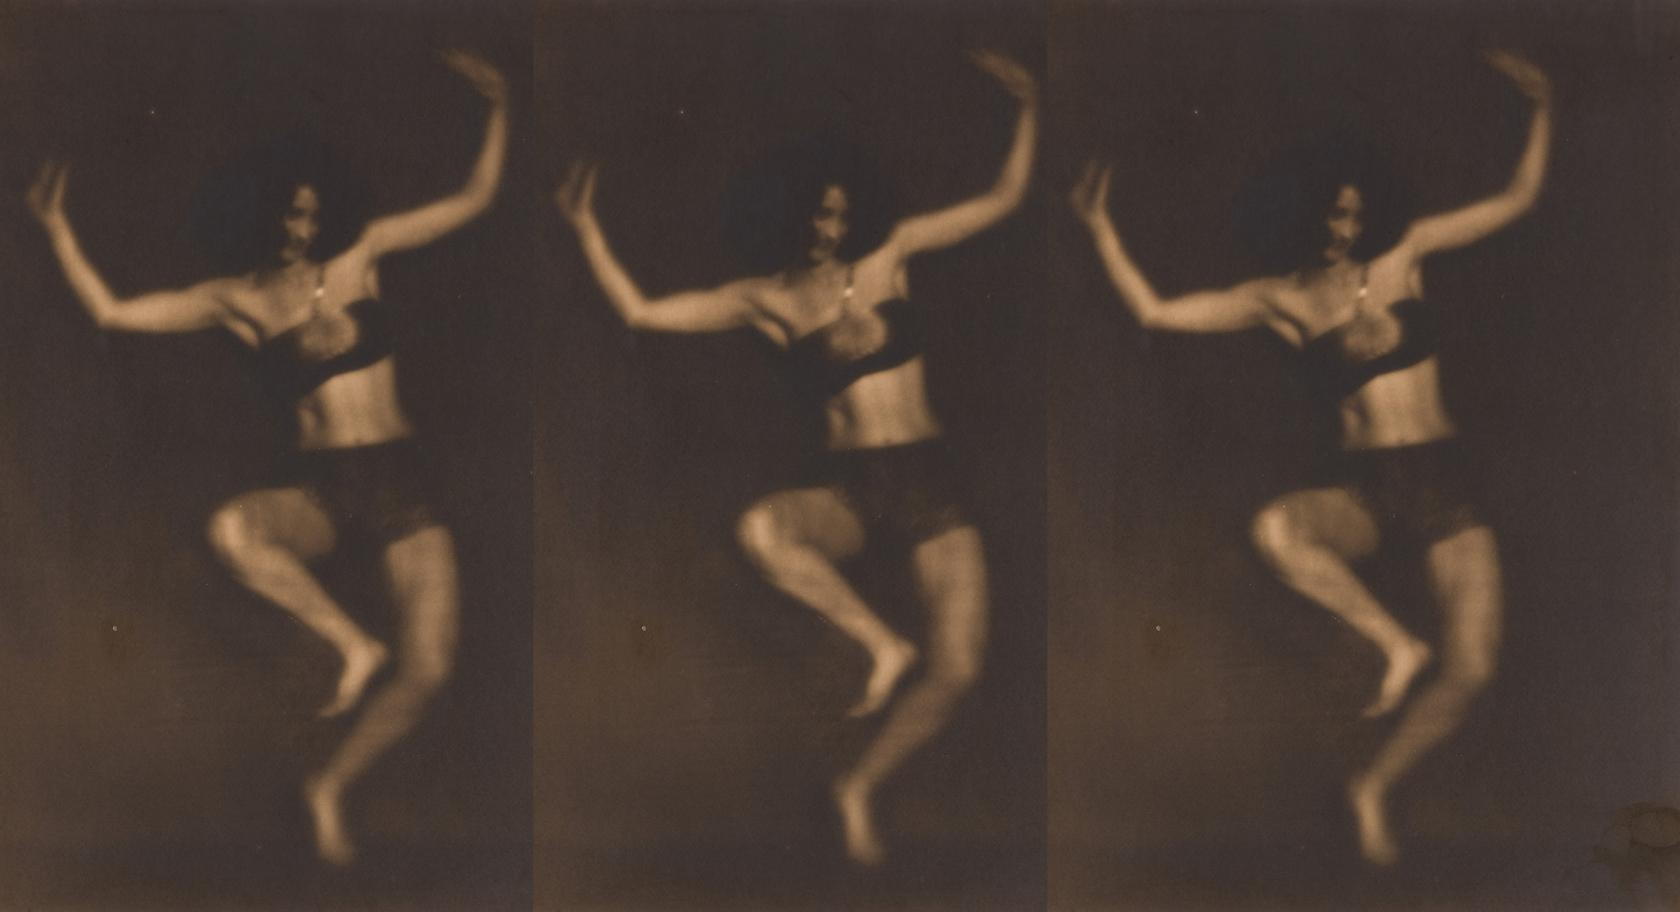 Ben Magid Rabinovitch, (American, 1884-1964), Dance Grotesque, 1922, gelatin silver print, 13 13/16 x 10 7/8 in., gift of the Dr. James E. and Debra Pearl Photograph Collection, UMFA2001.22.60